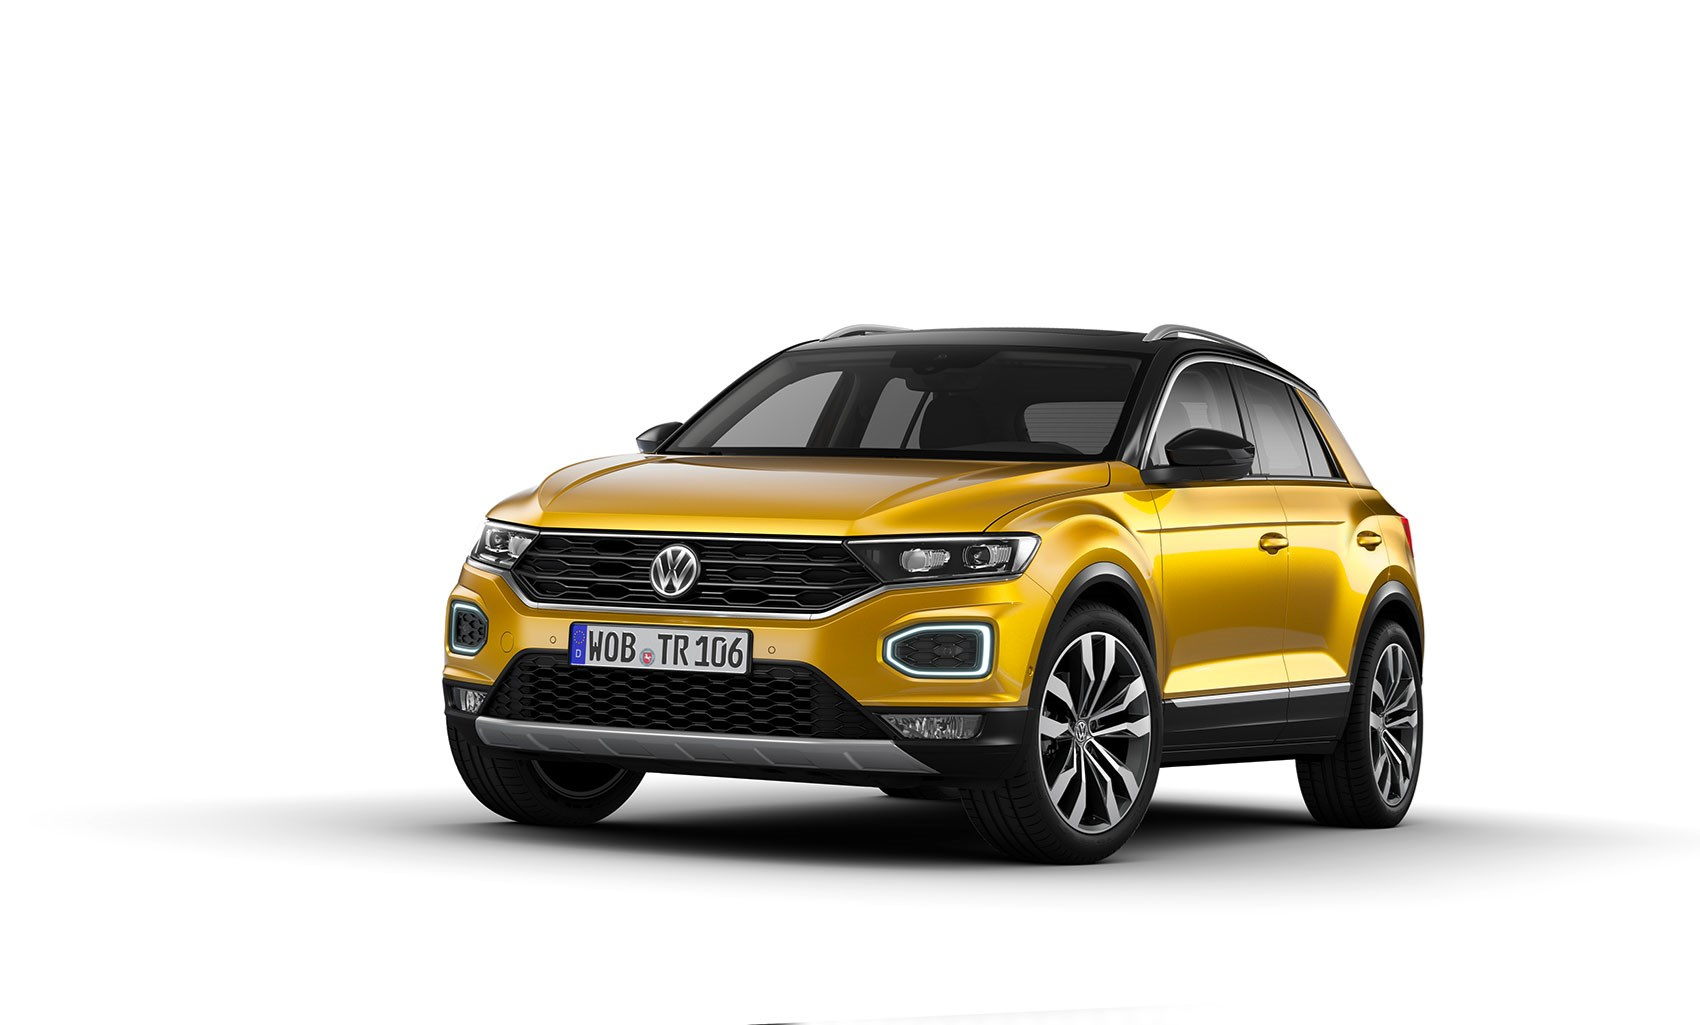 2020 VW Tiguan: Design, Specs, Price >> Vw T Roc Cabriolet 2020 News Pictures Specs Prices On Sale Date